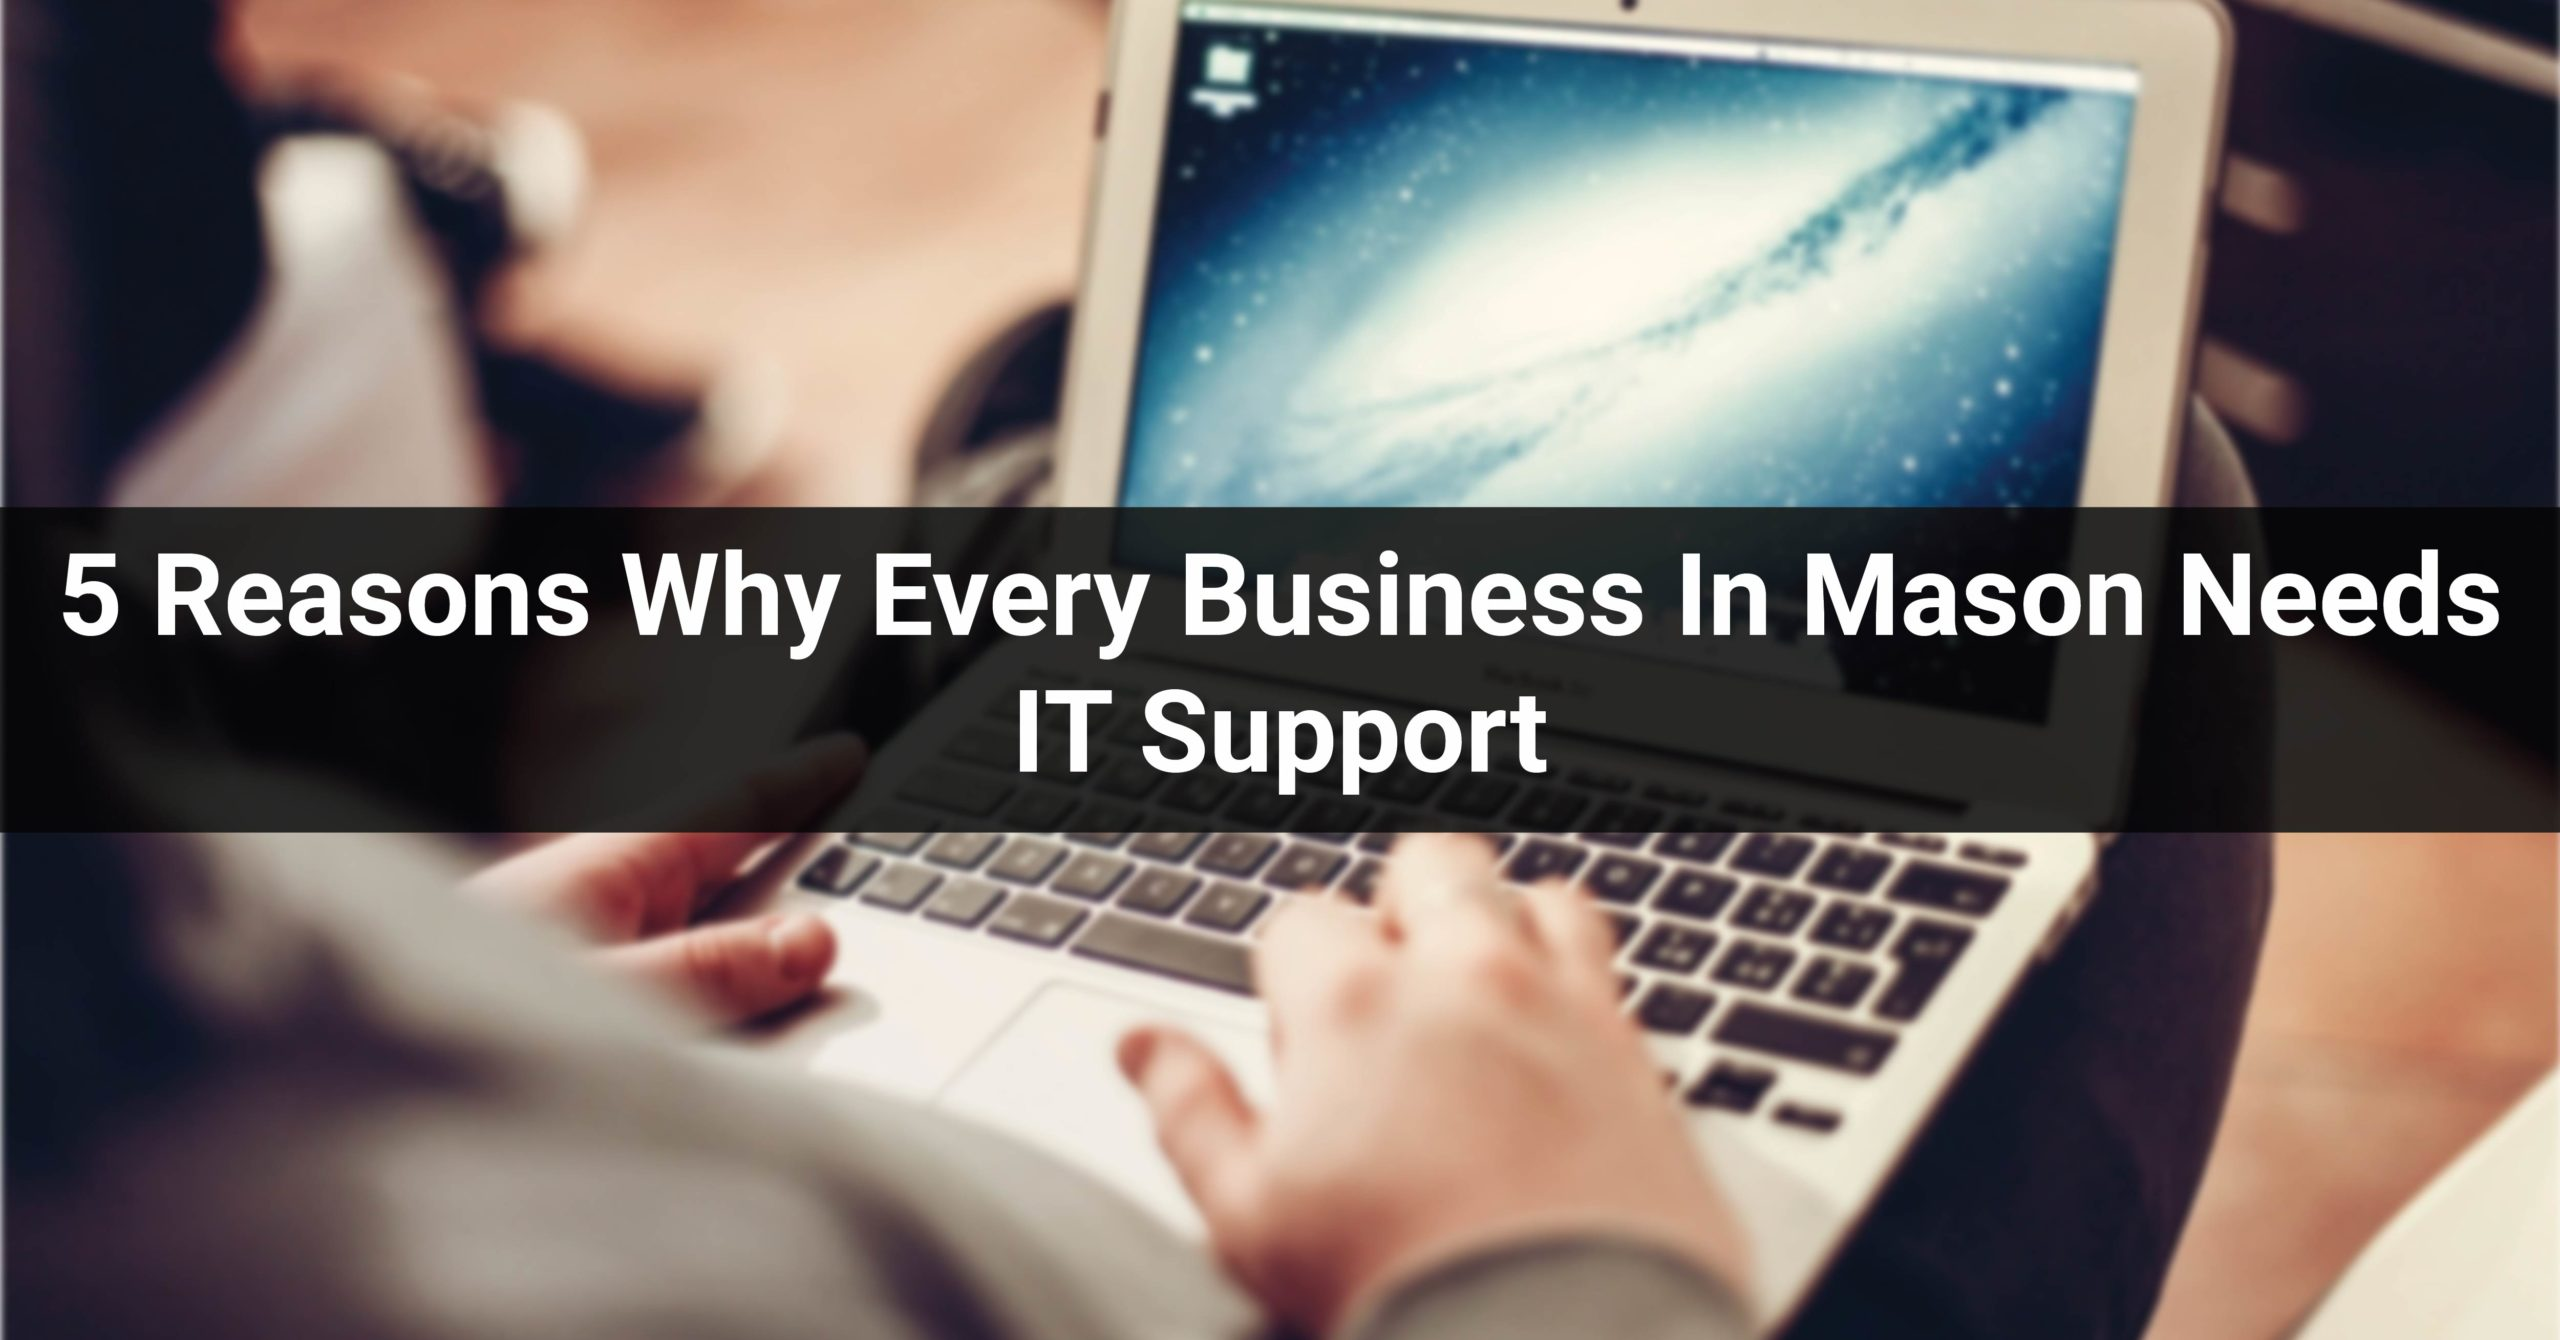 5 Reasons Why Every Business In Mason Needs IT Support Services